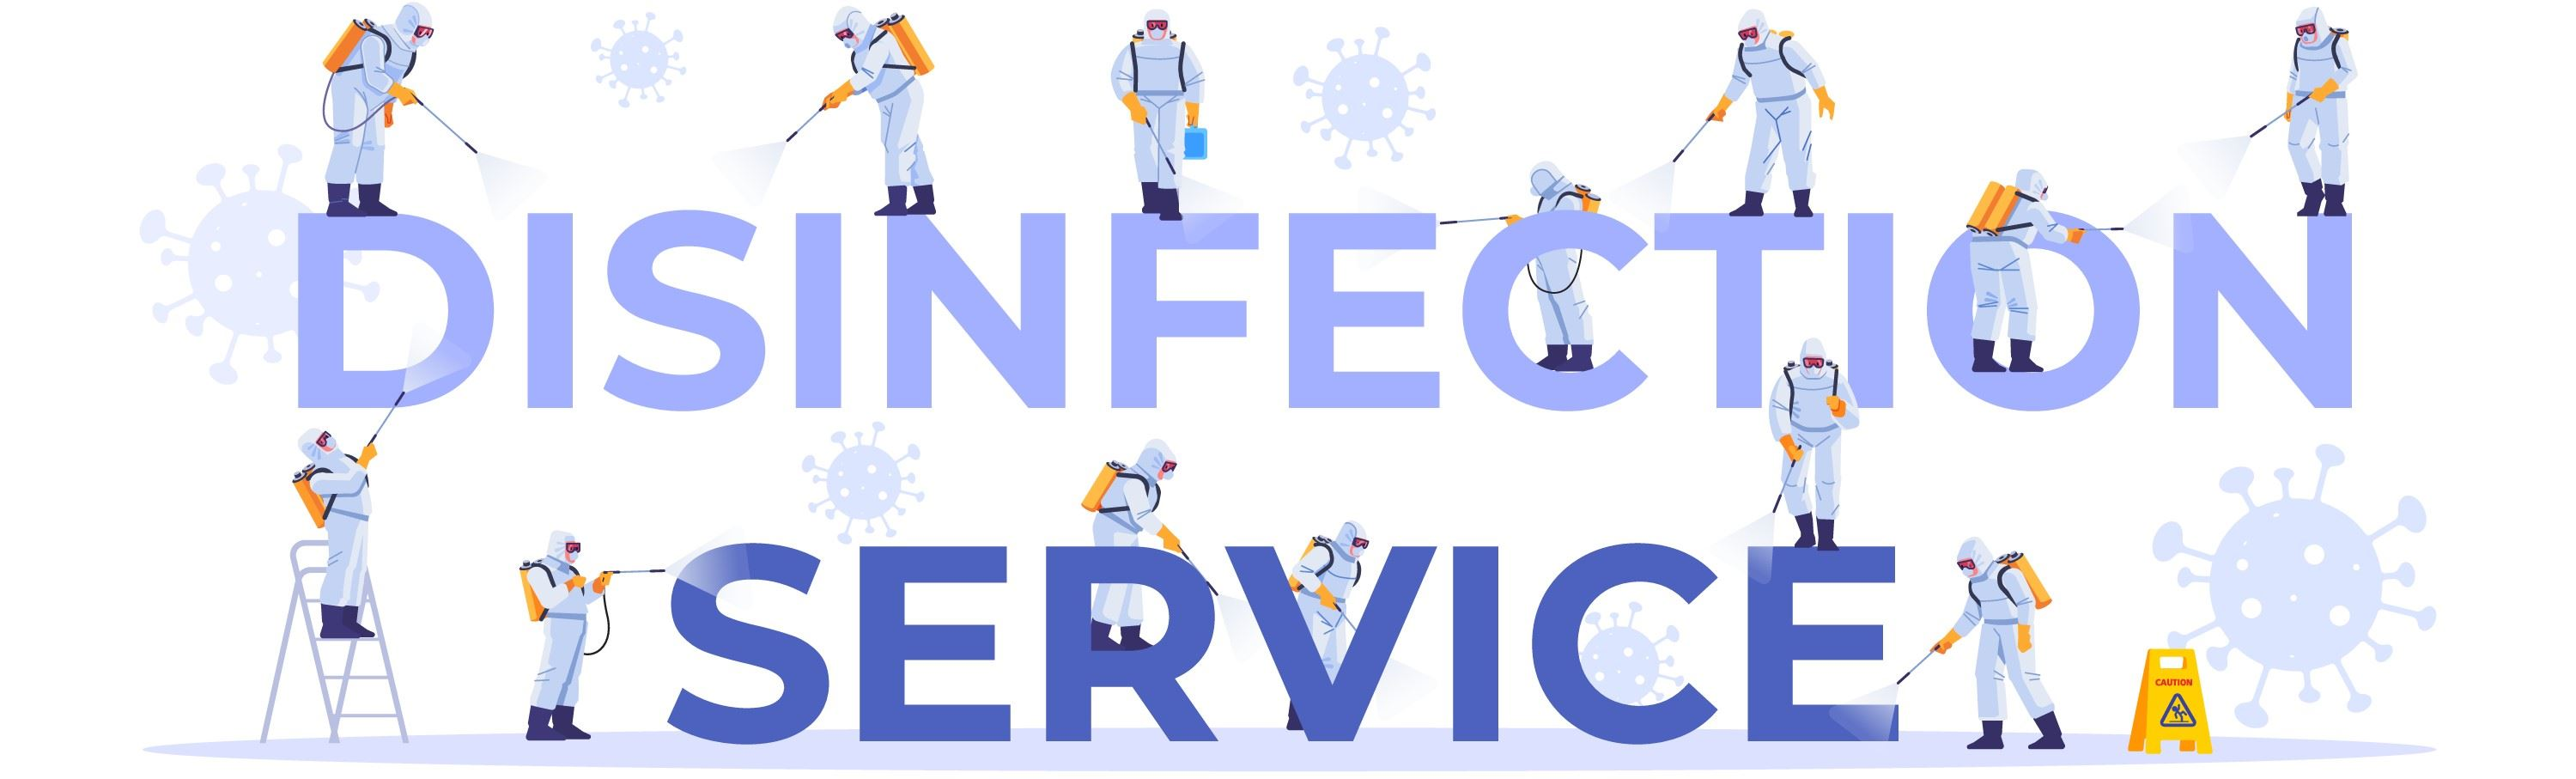 Banner Saying: Disinfection Service